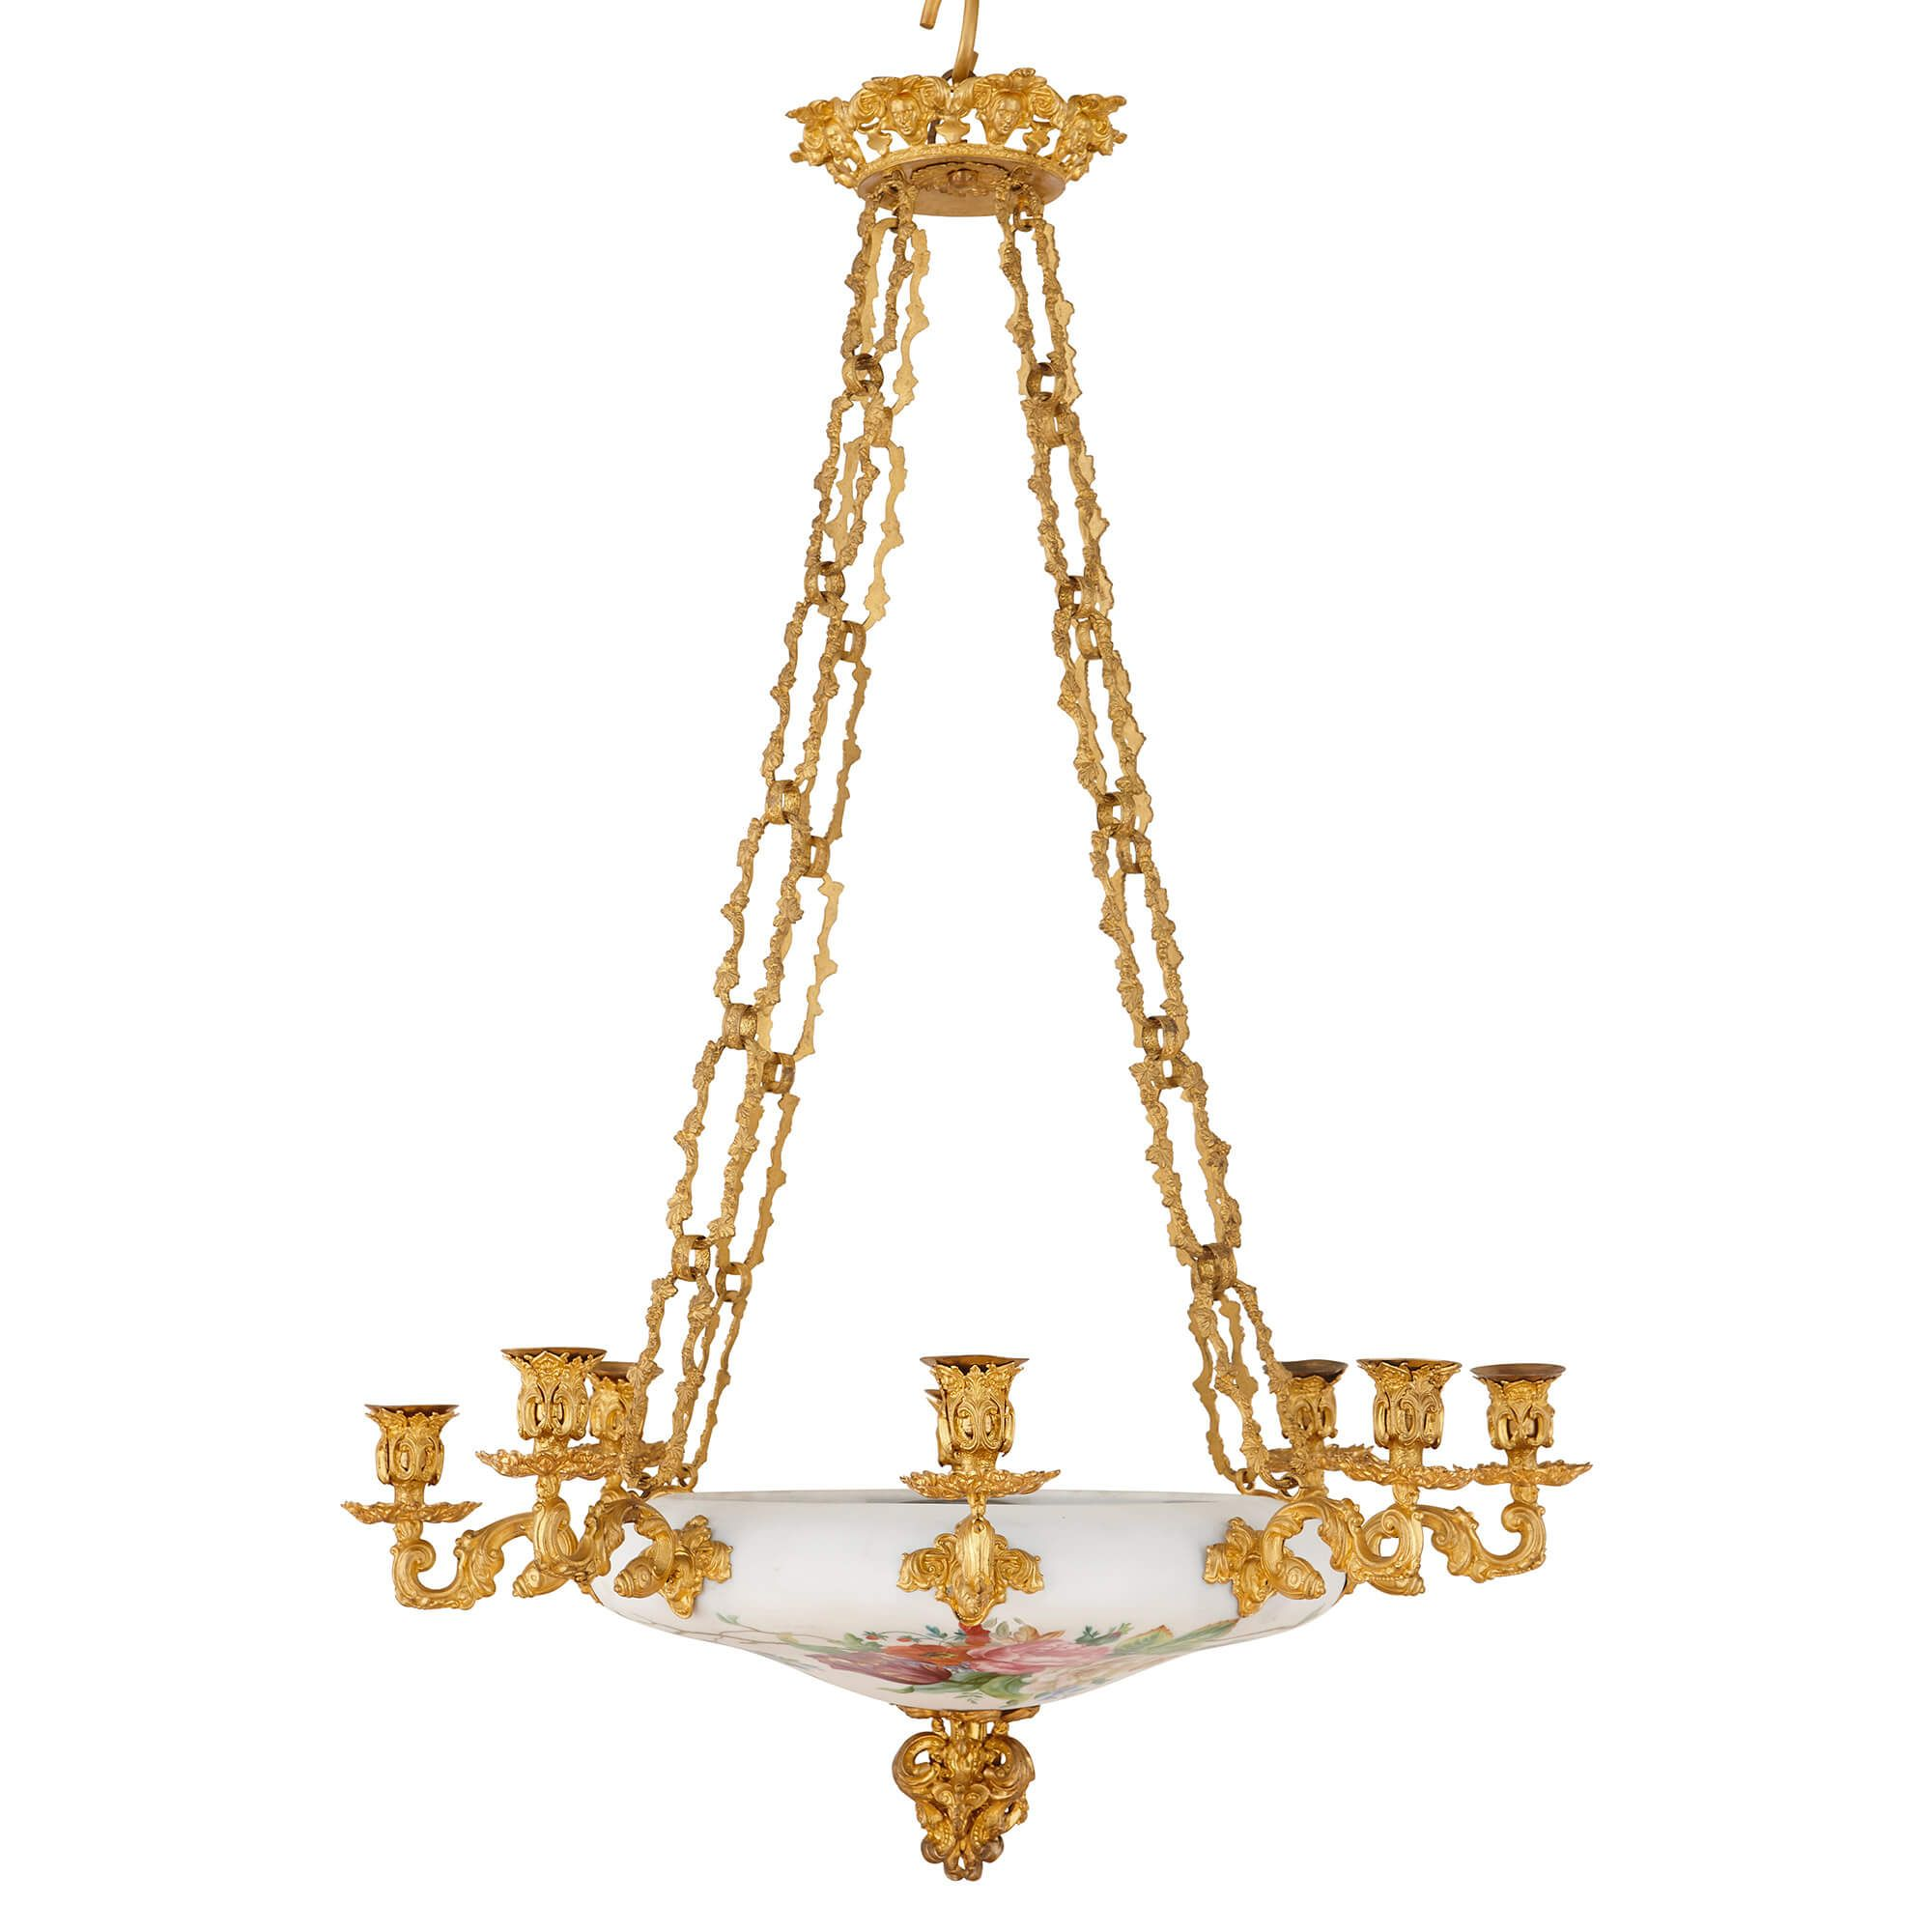 Antique French Ormolu And Opaline Glass Chandelier